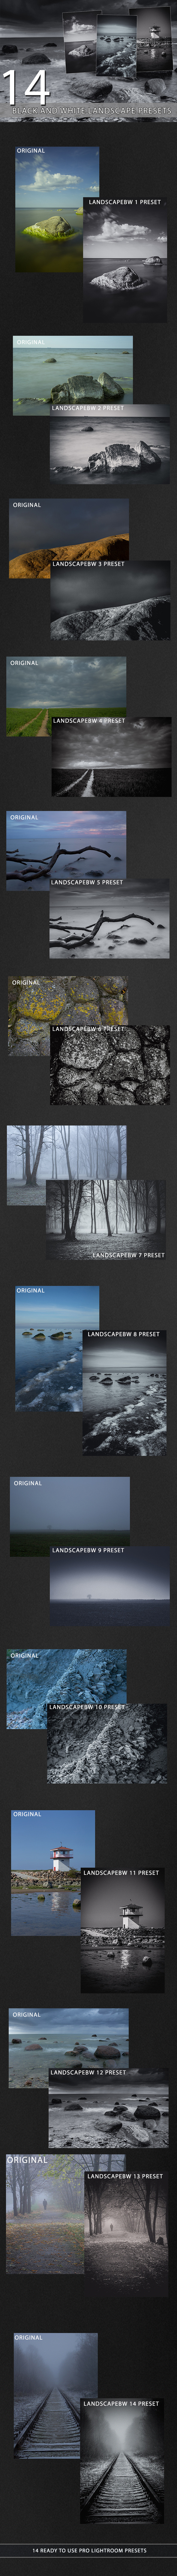 GraphicRiver 14 Black and White Landscape Presets 9895073